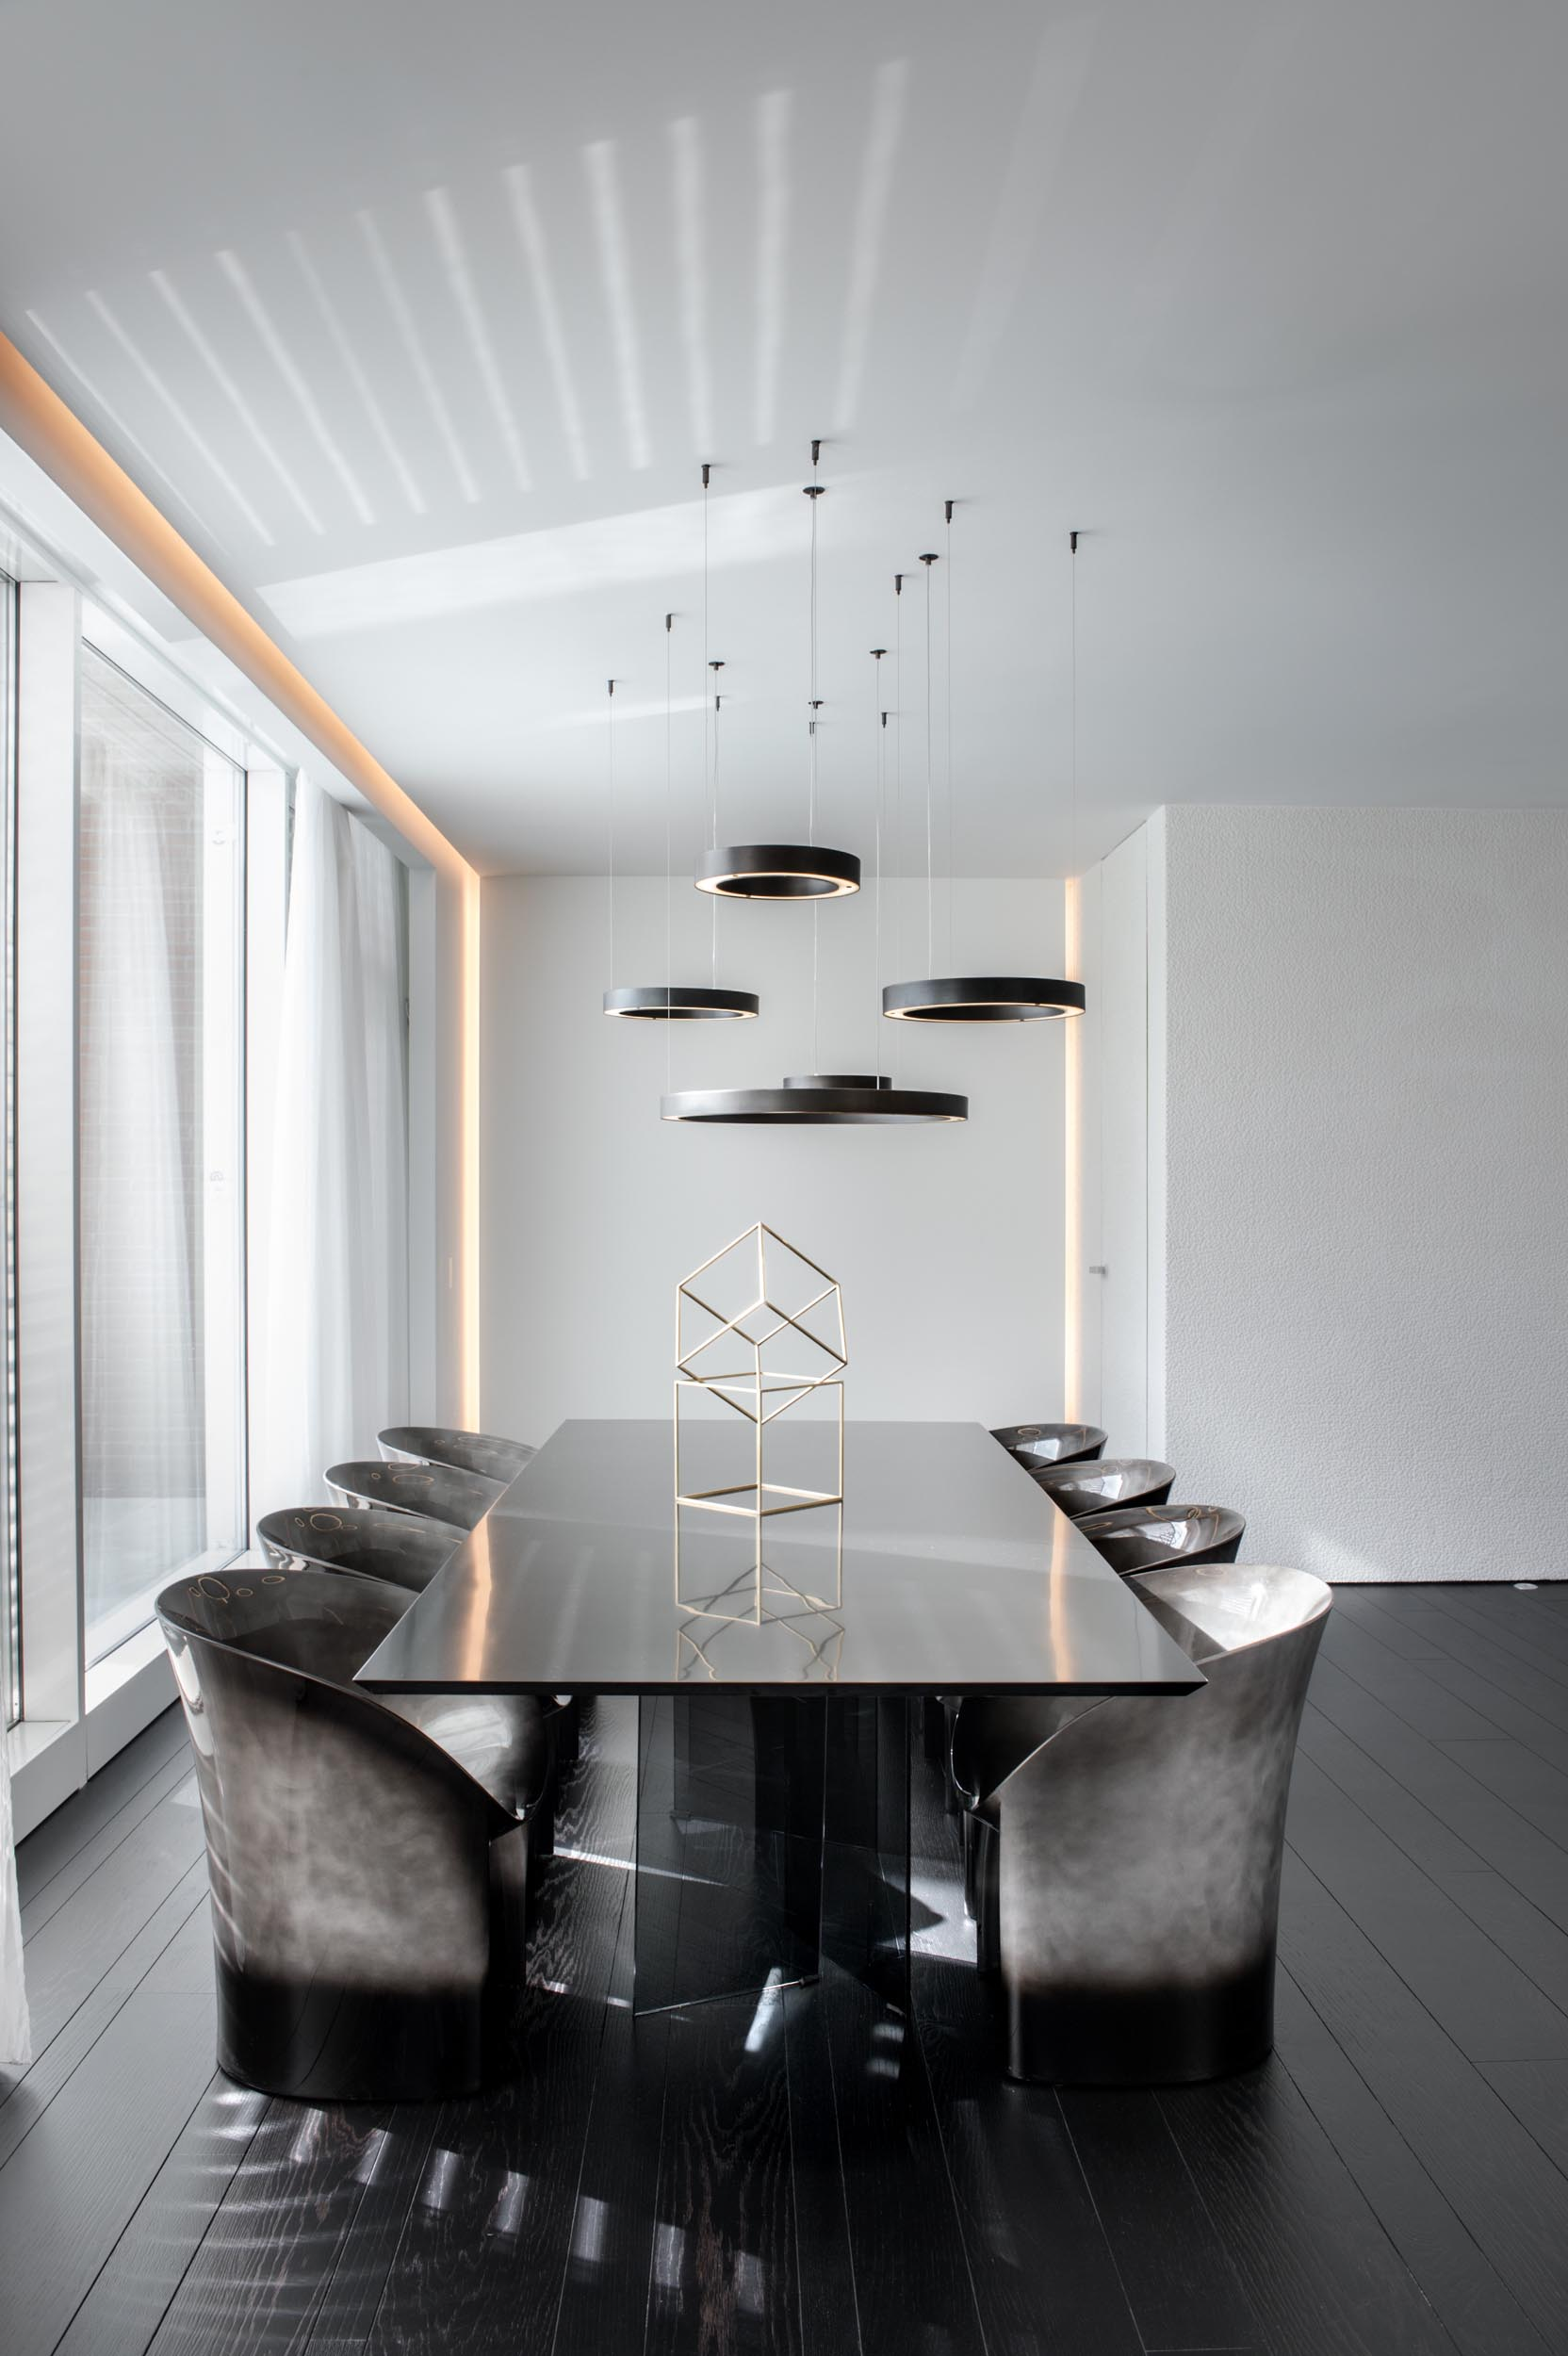 A modern dining room with circular pendant lights hanging above the black dining table, while the surrounding dining chairs are dark with a silvery element.